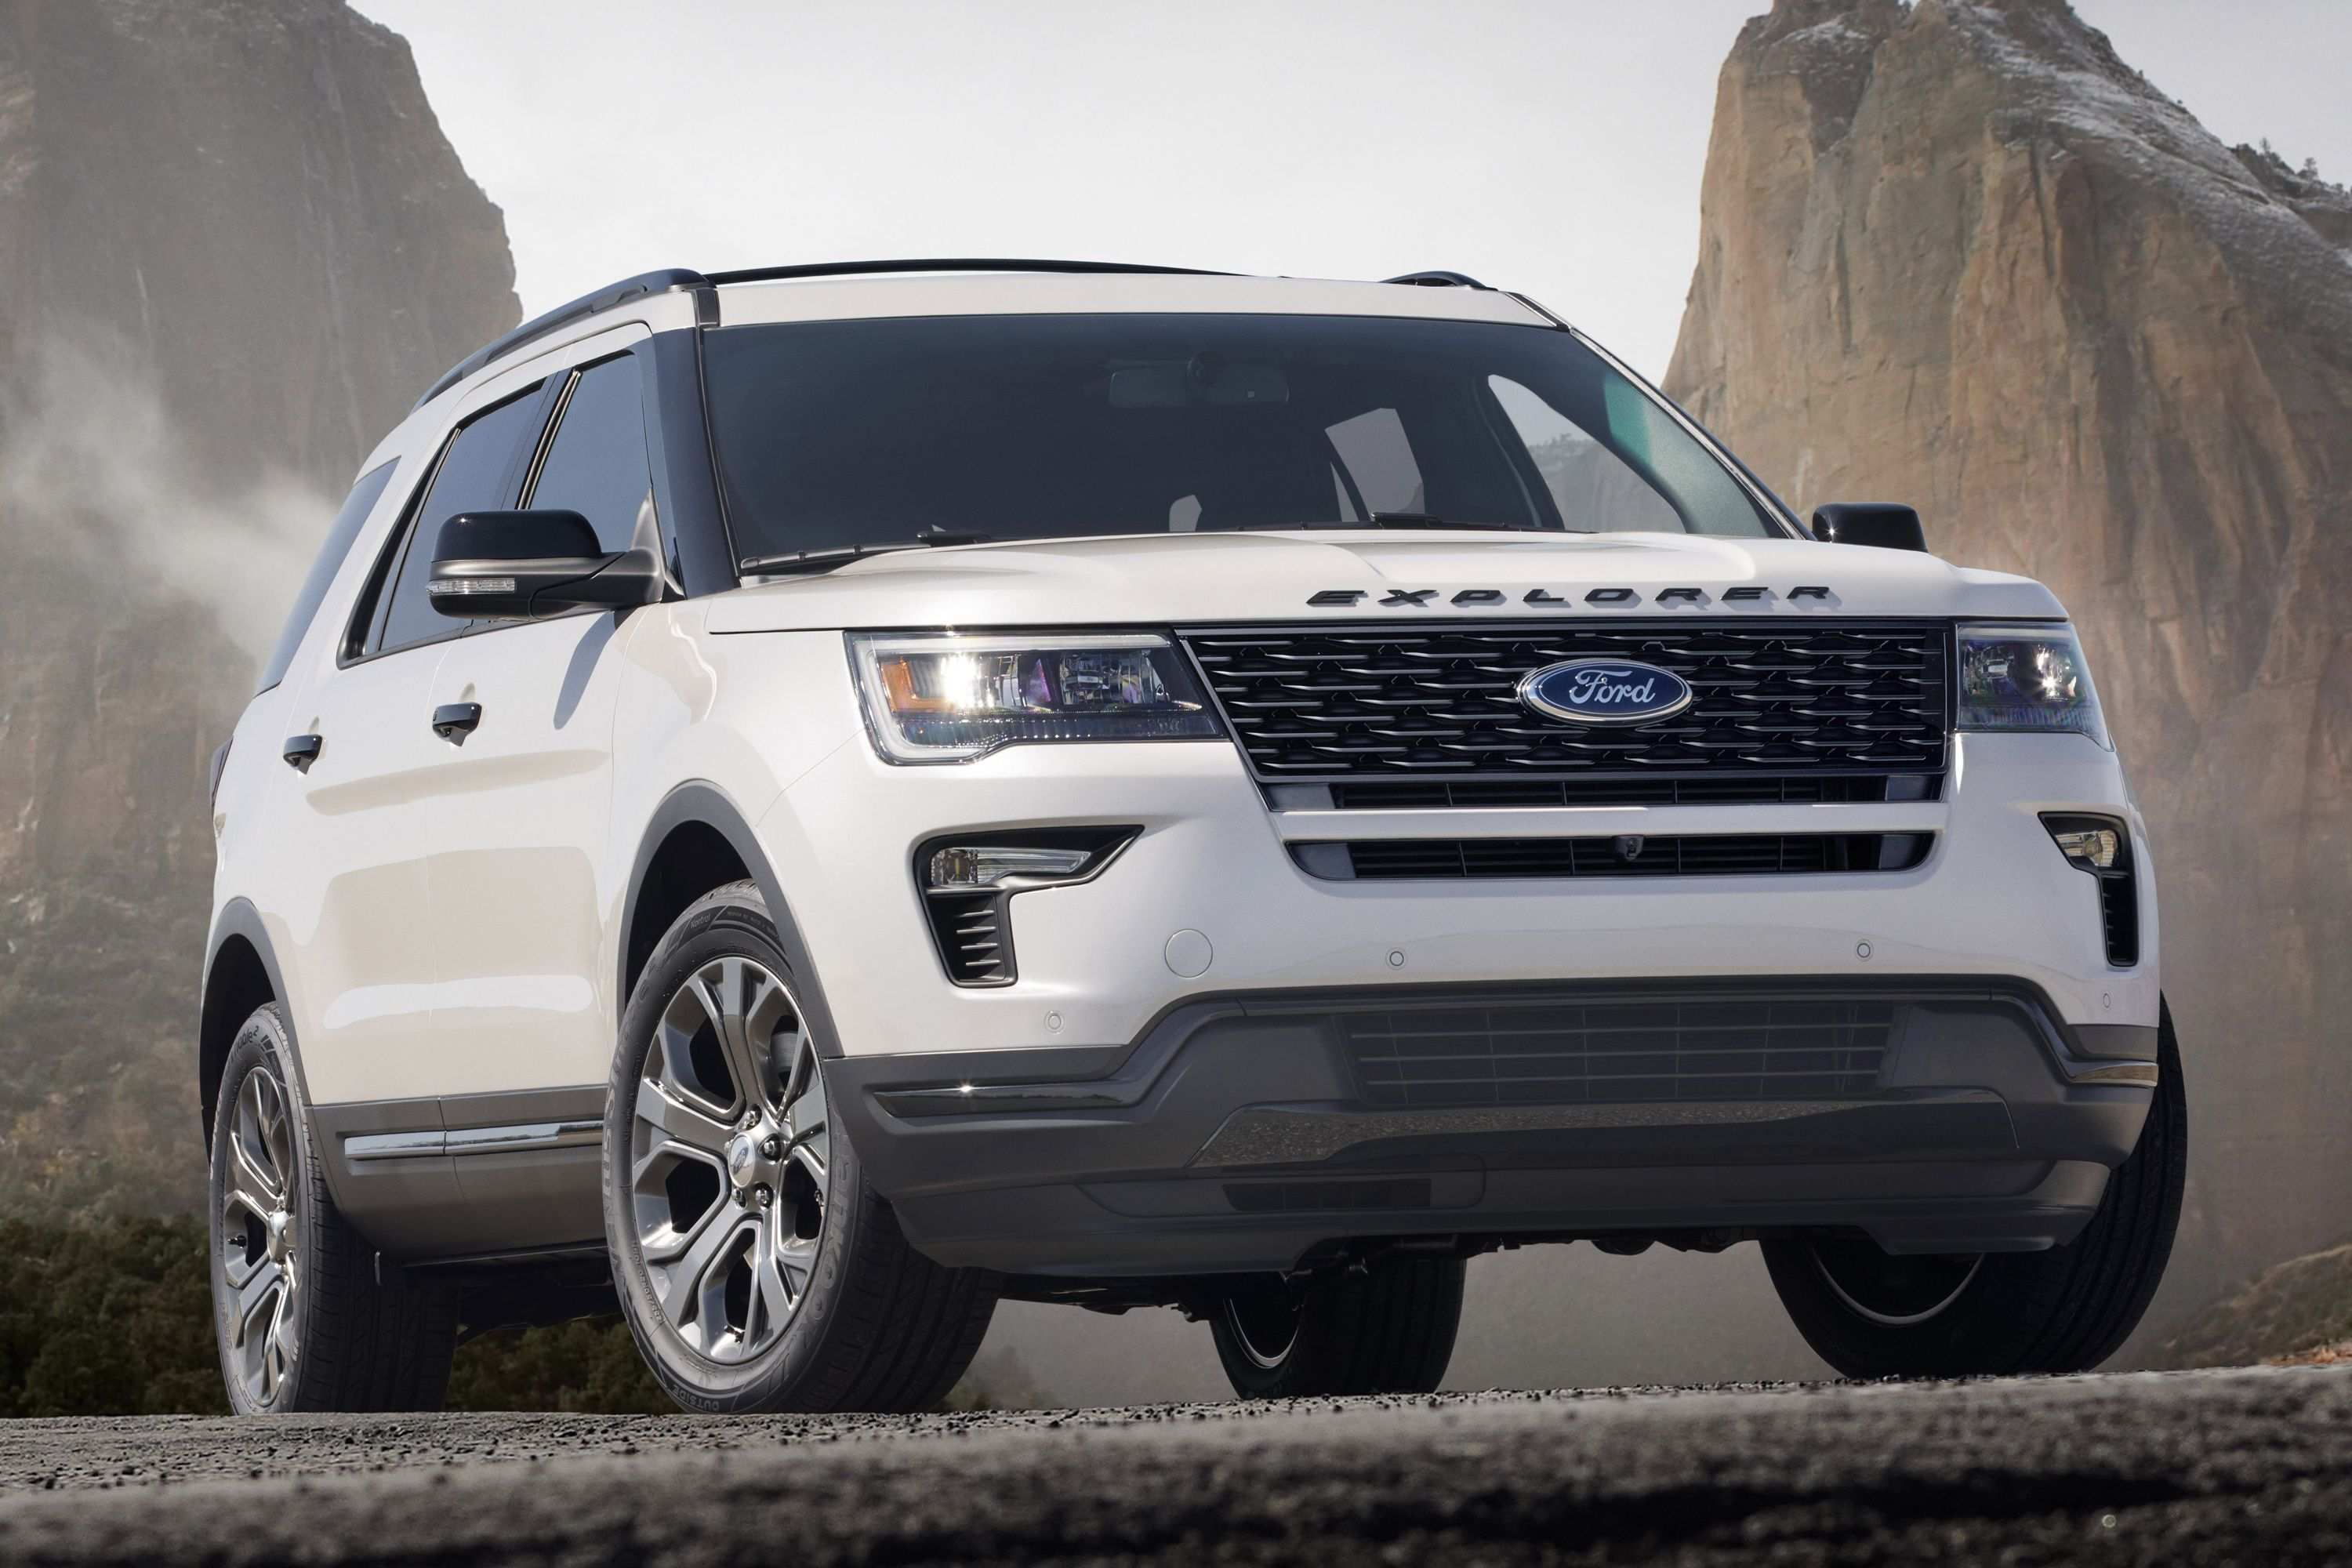 57 The Best 2020 The Ford Explorer Concept